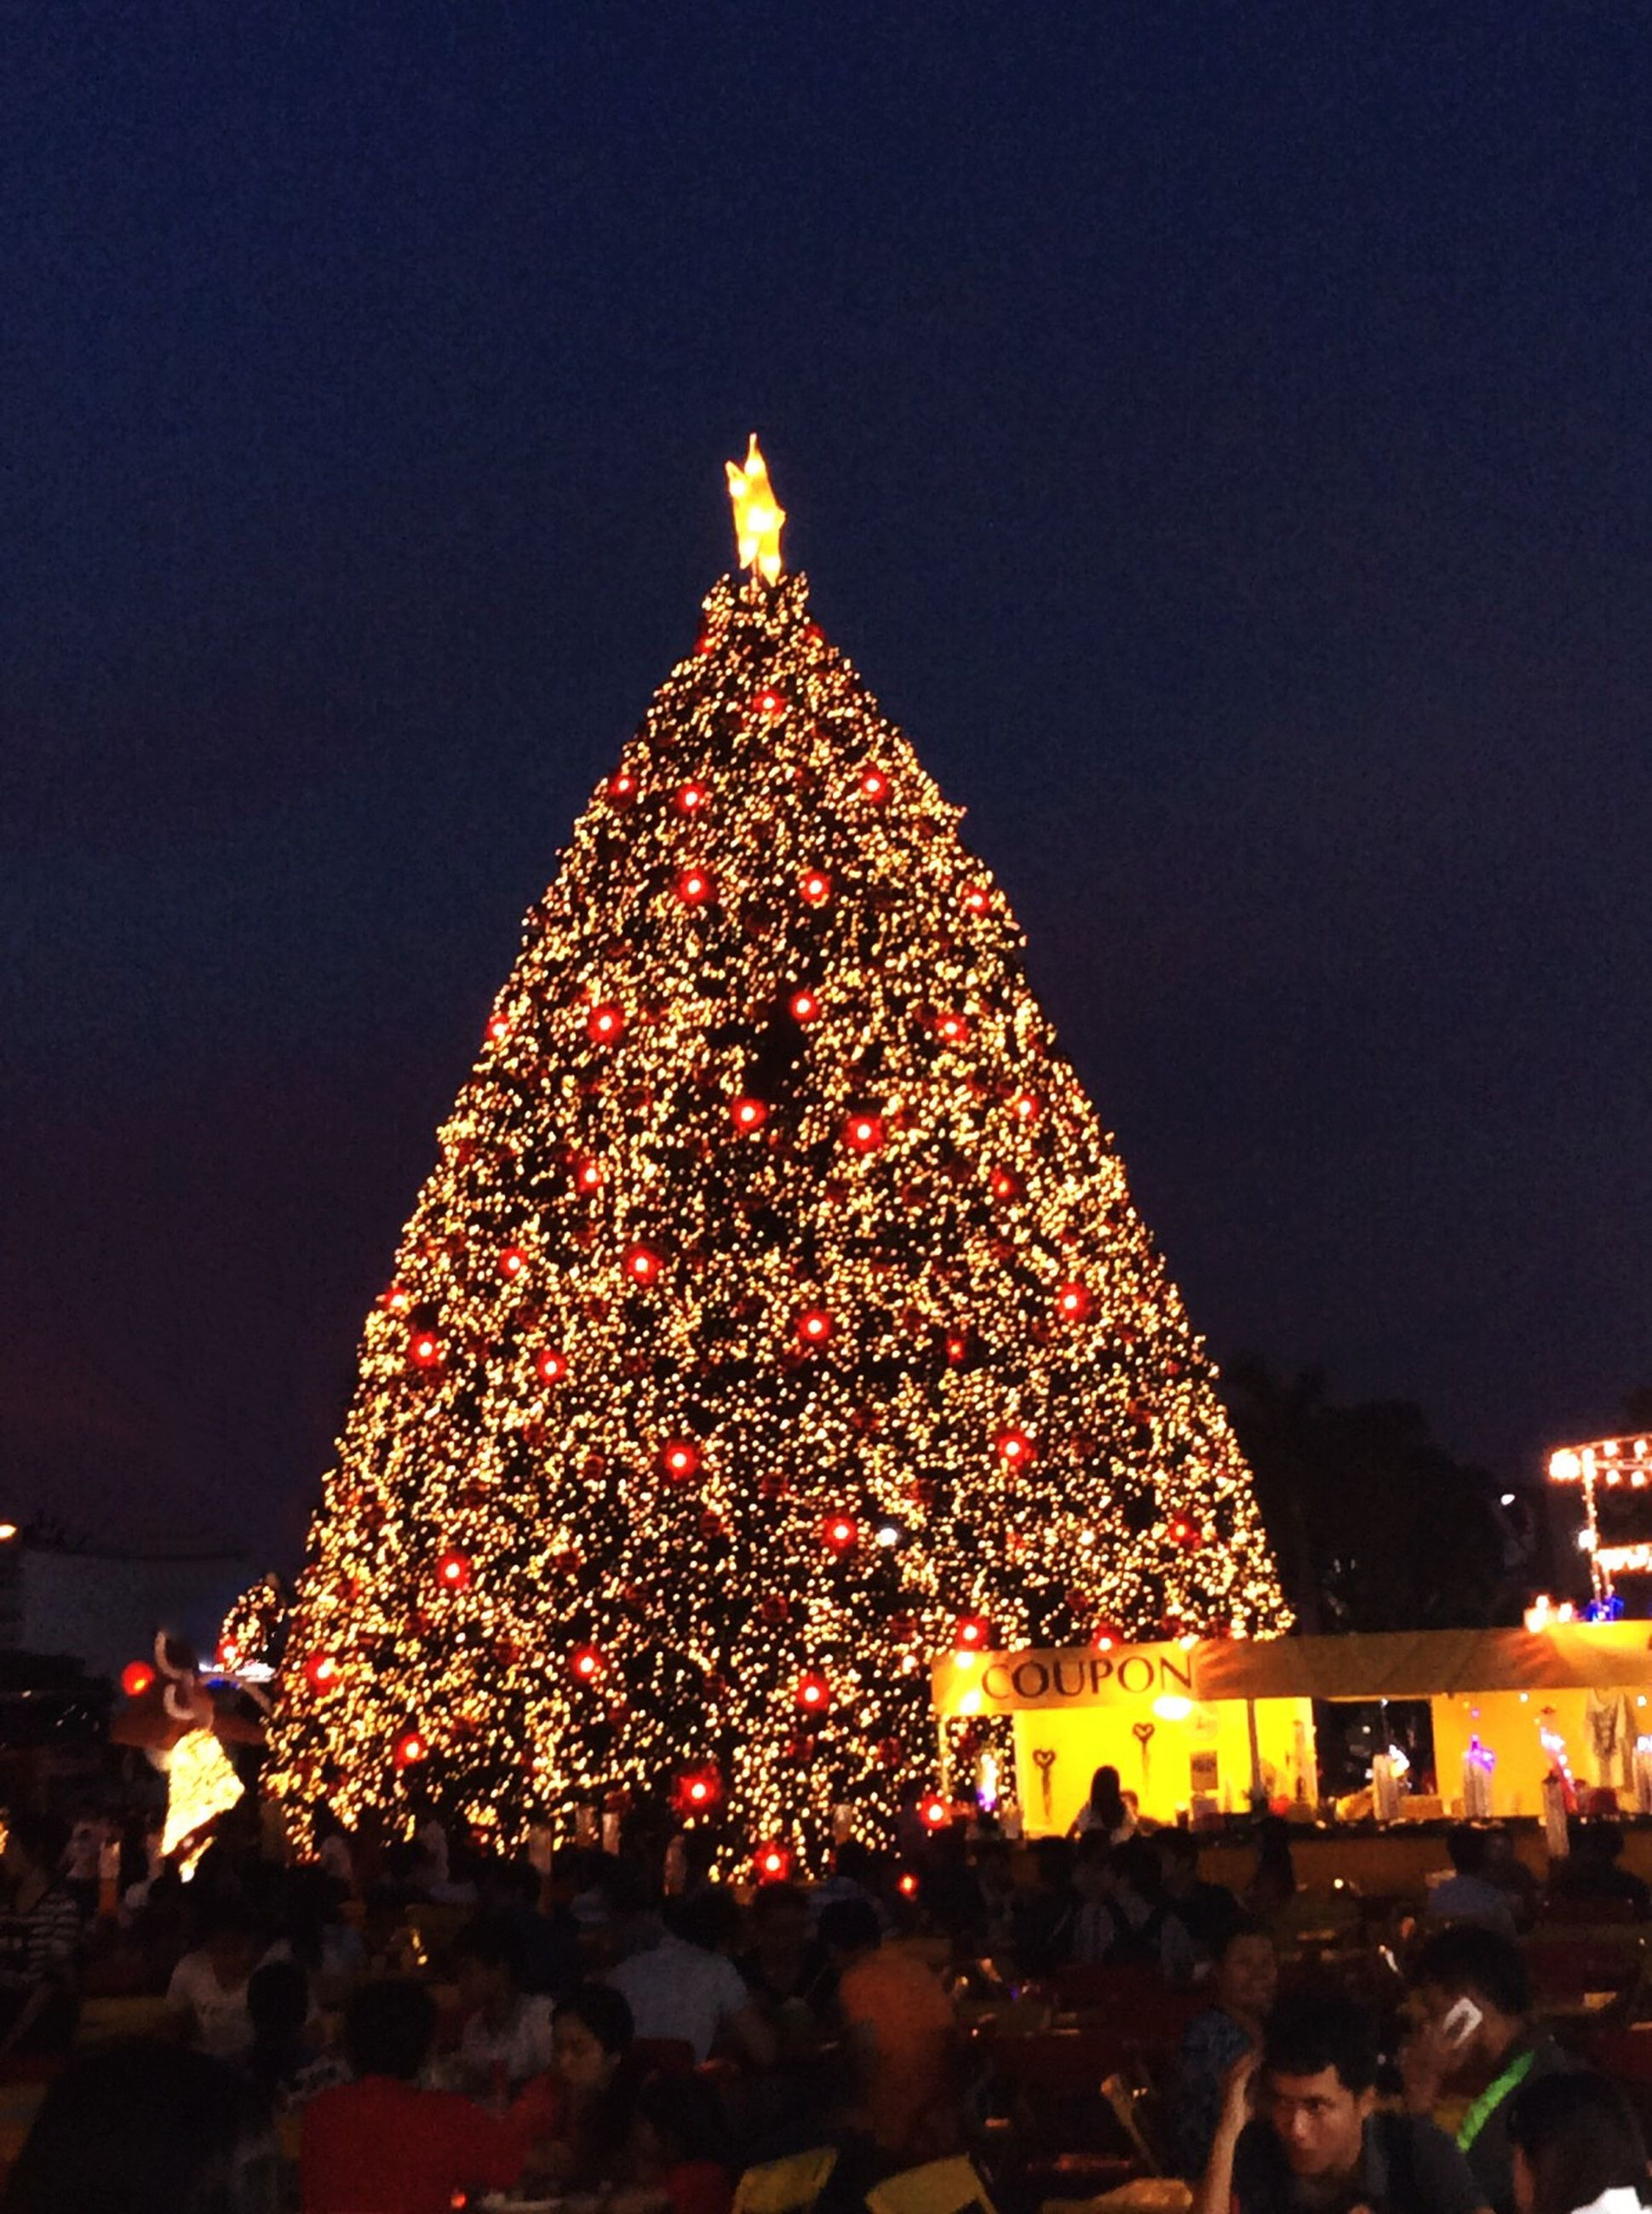 illuminated, night, celebration, large group of people, christmas, tradition, crowd, christmas decoration, traditional festival, cultures, decoration, lighting equipment, christmas tree, celebration event, event, christmas lights, sky, building exterior, low angle view, built structure